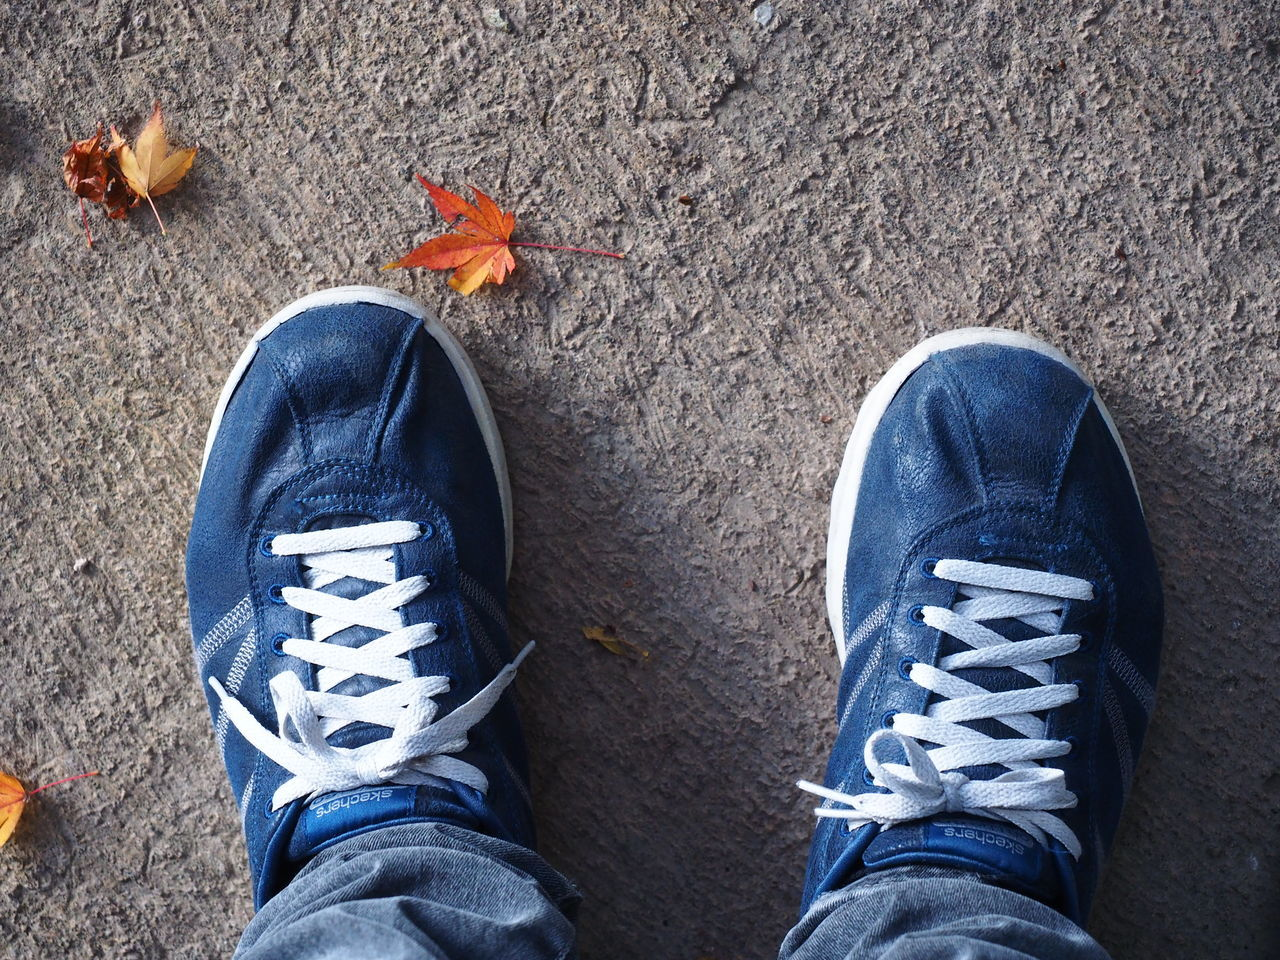 Sneaker Background Blue Shoes Blue Sneaker Lifestyles Maple Out Of The Box Shoe Shoes Sketcher Sneakers EyeEmNewHere